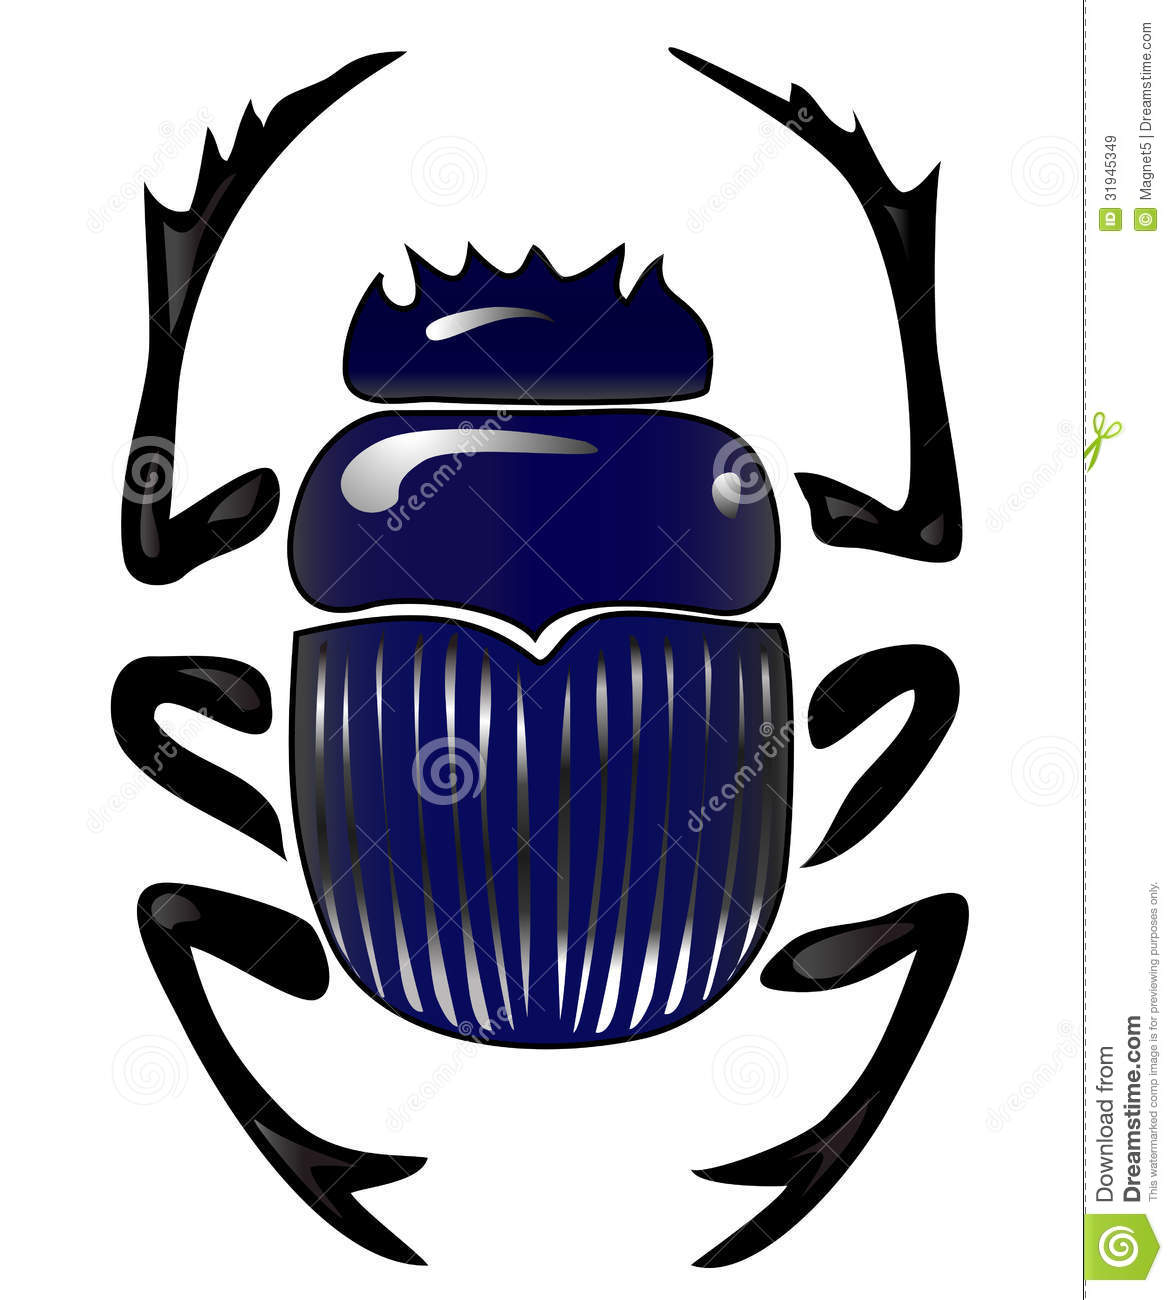 Beetle Scarab Stock Vector Illustration Of Representation 31945349